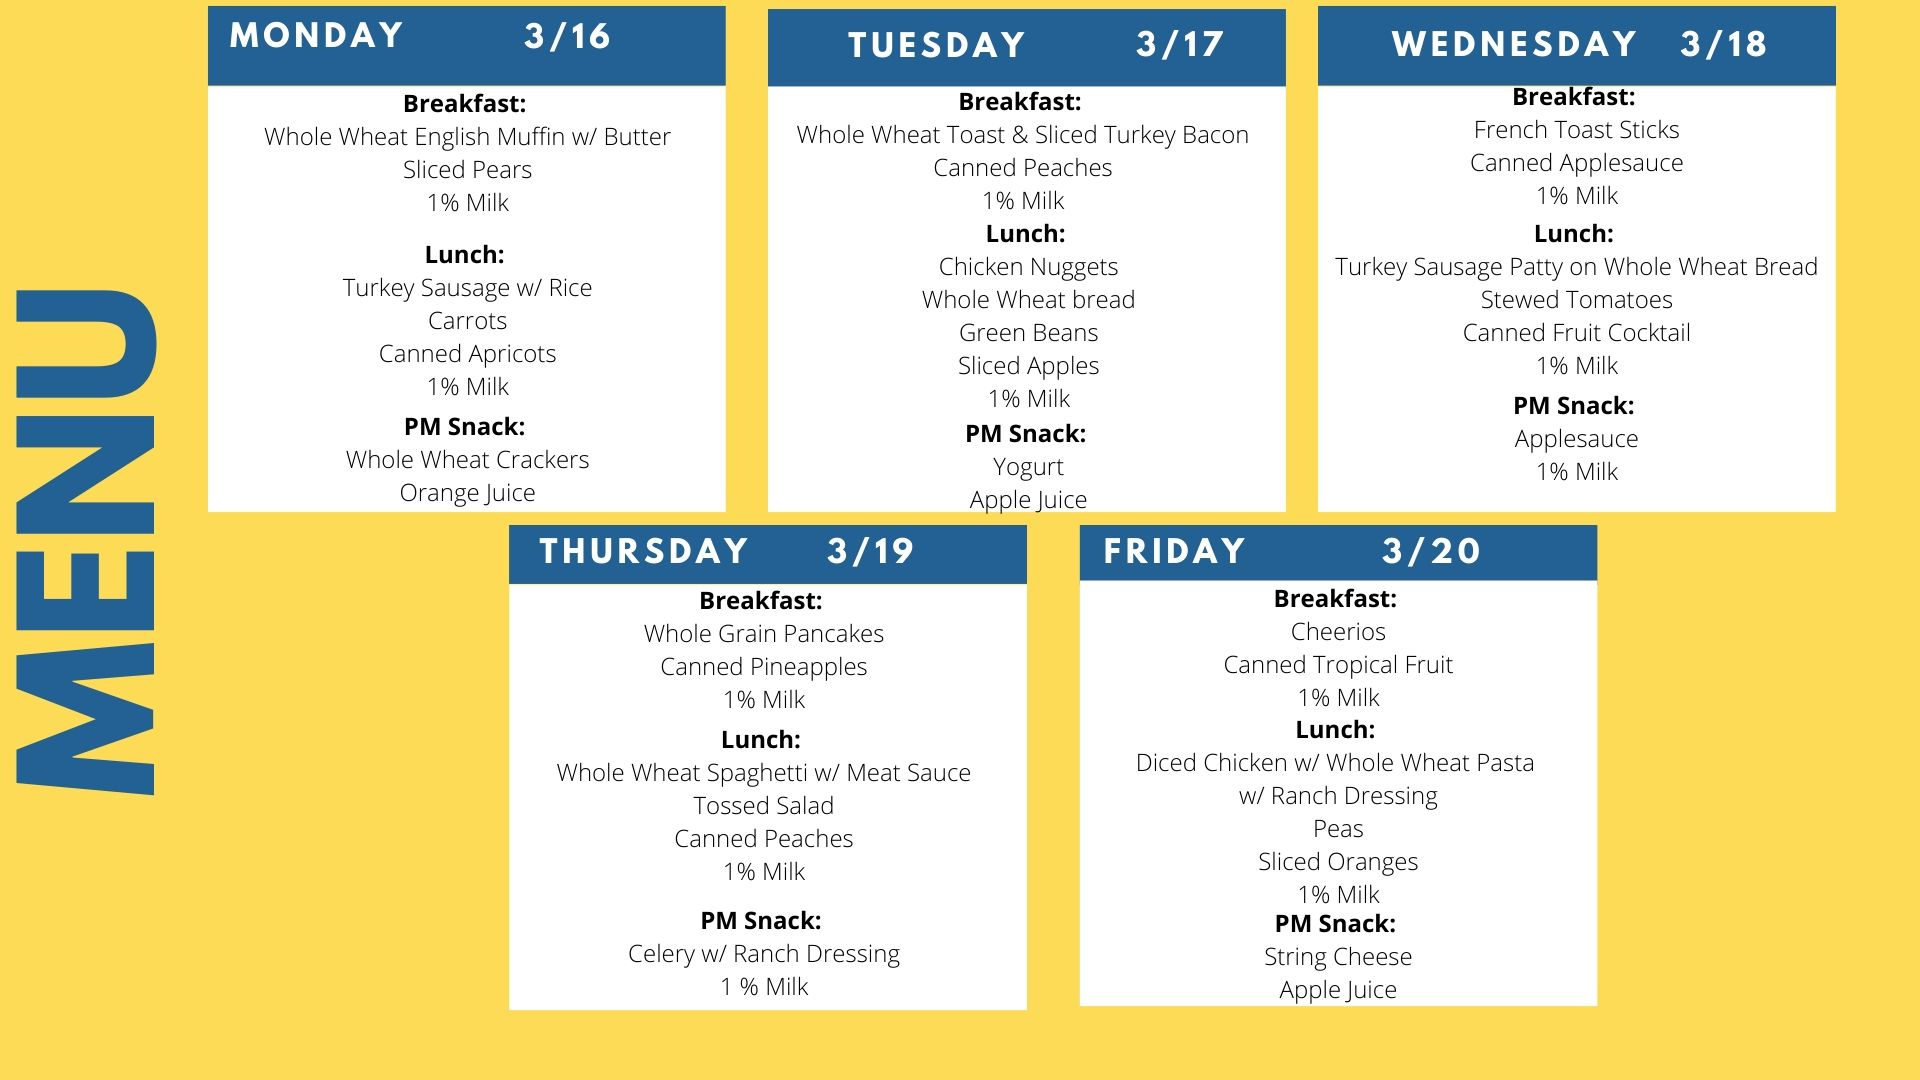 Meal Menu for the week of March 16